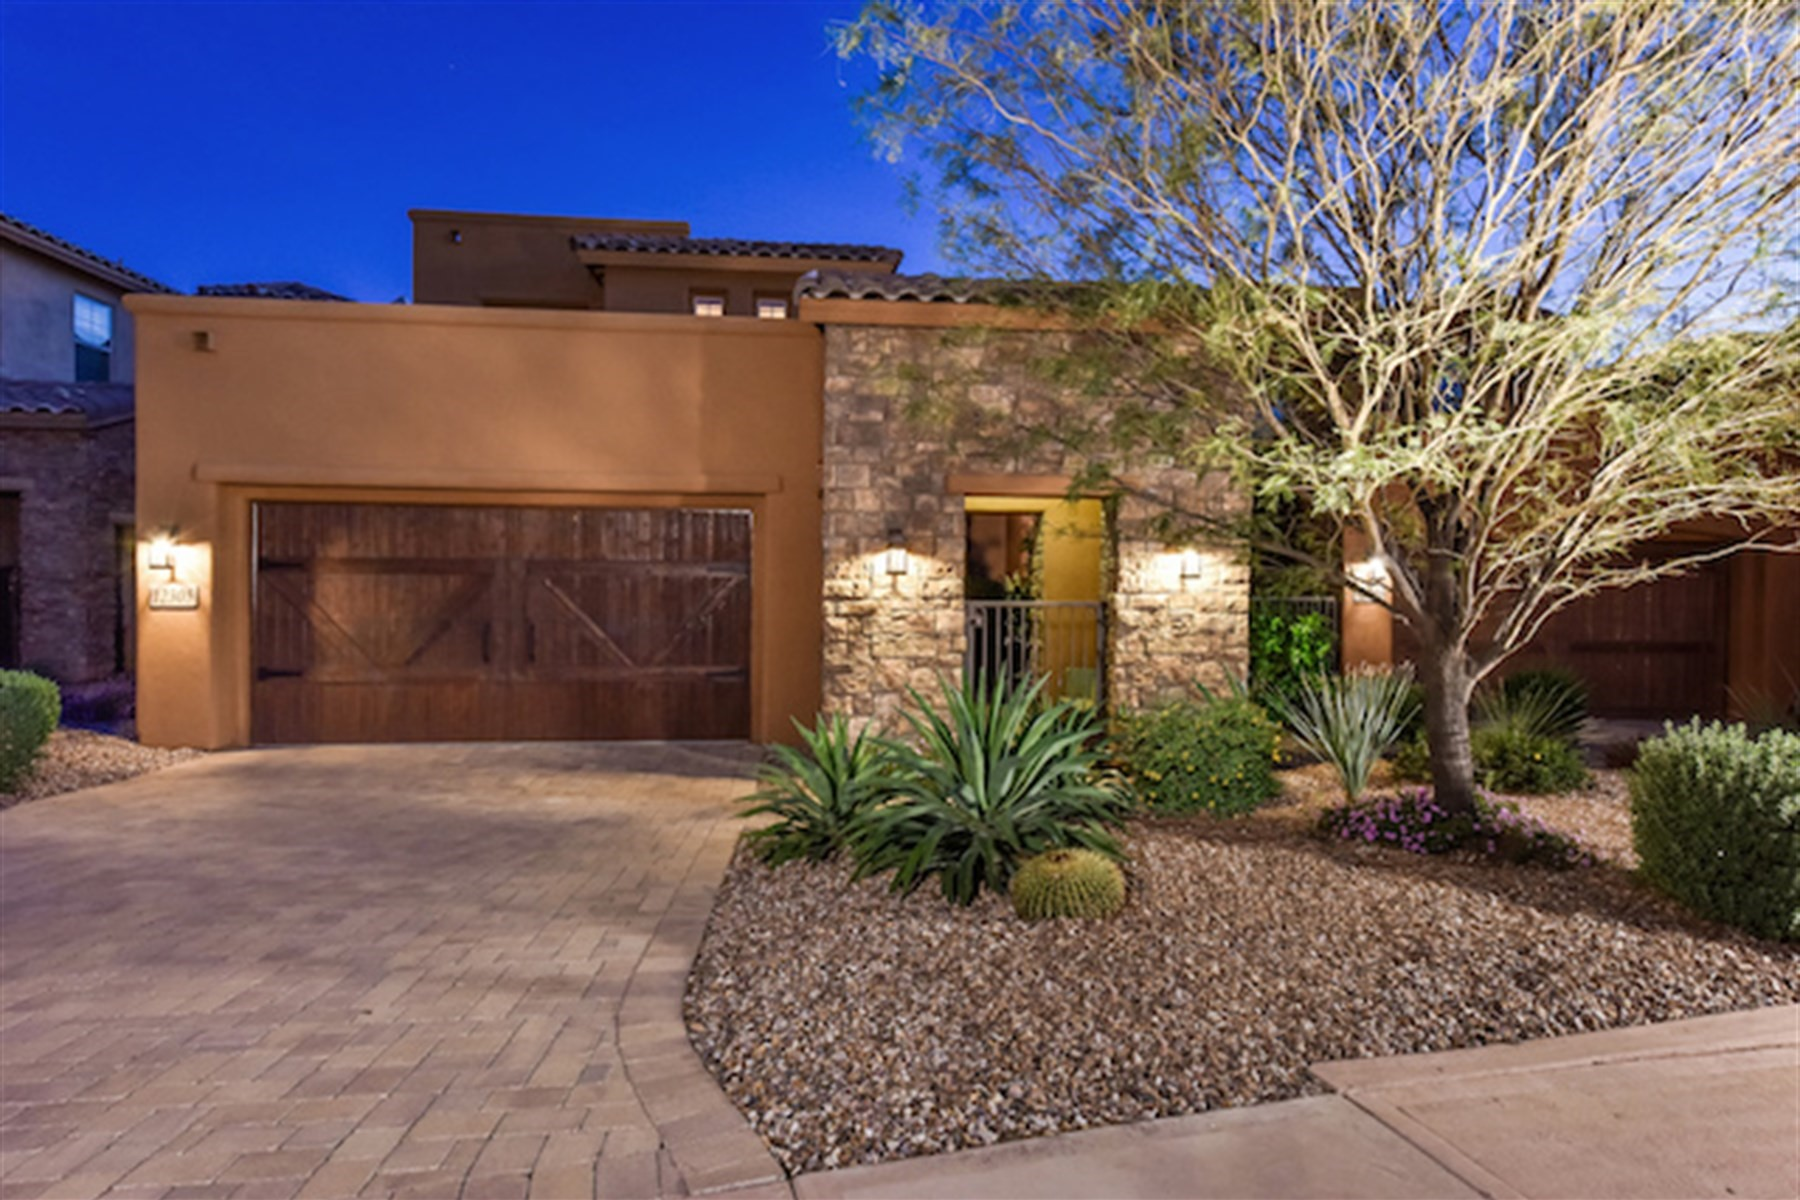 Casa Unifamiliar por un Venta en A truly beautiful Dick Lloyd semi-custom home 12305 E North Ln Scottsdale, Arizona, 85259 Estados Unidos